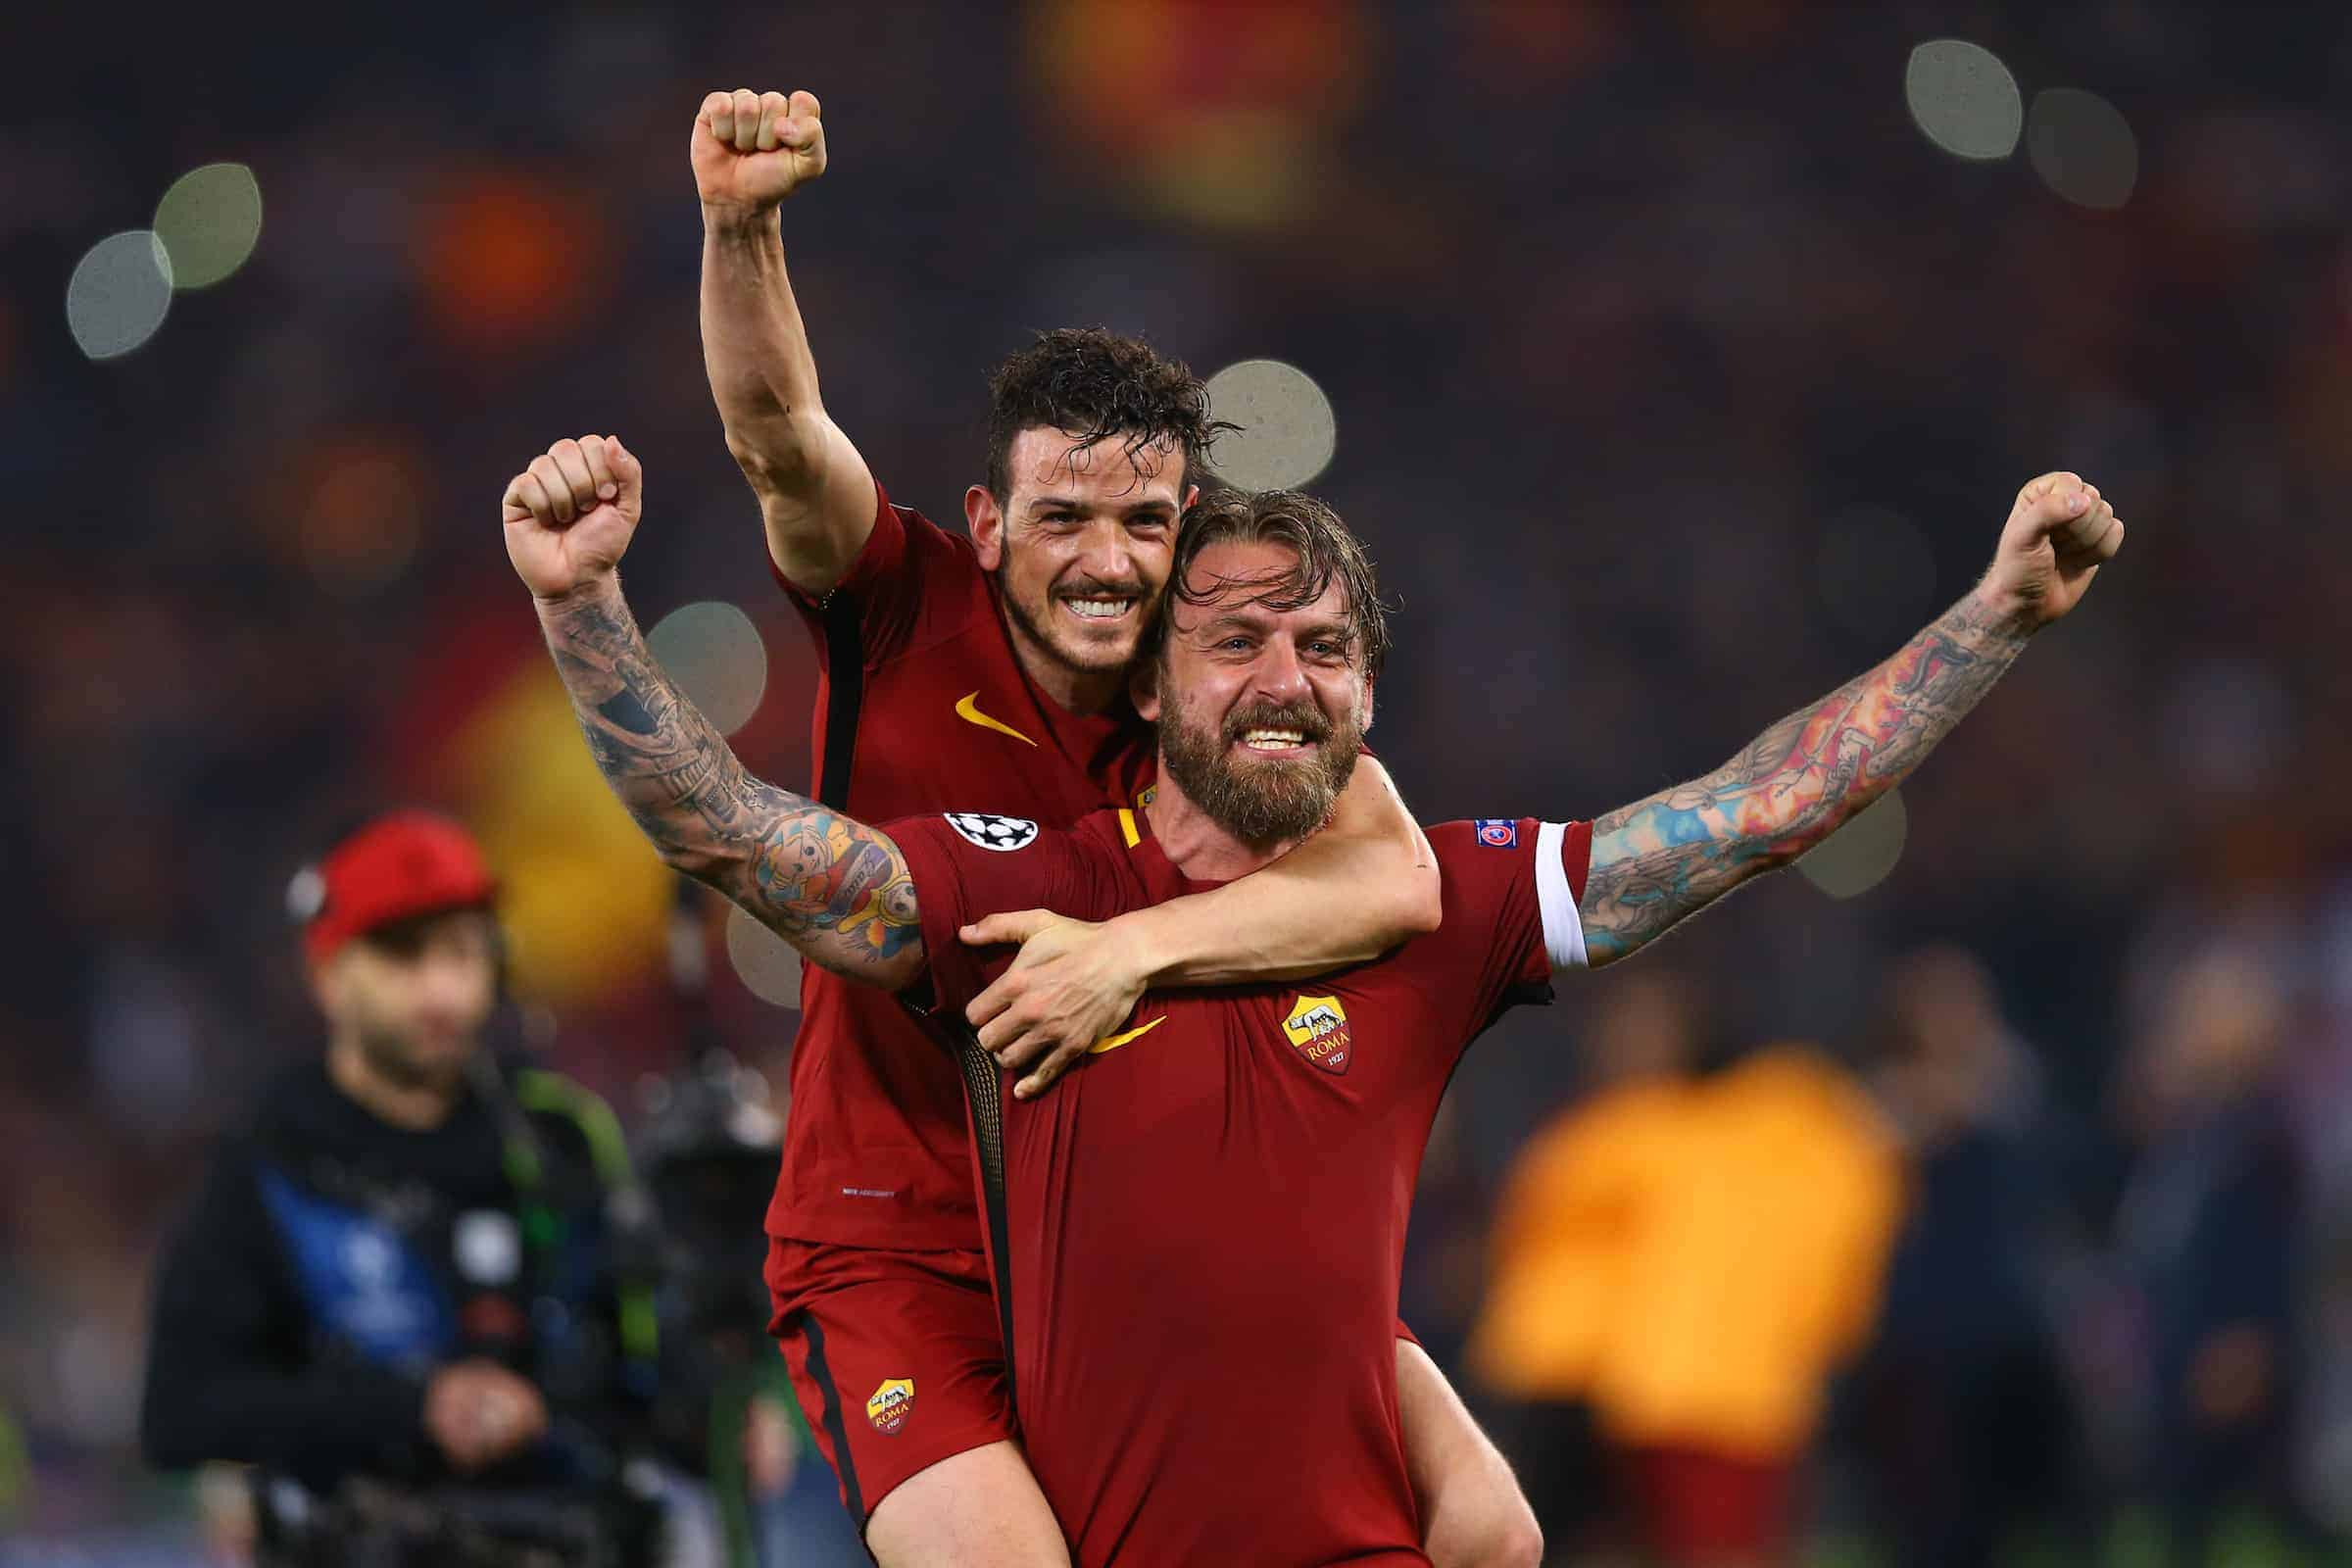 Alessandro Florenzi and Daniele De Rossi of Roma celebrate at Olimpico Stadium in Rome, Italy on April 10, 2018. (Photo by Matteo Ciambelli/NurPhoto/Sipa USA)